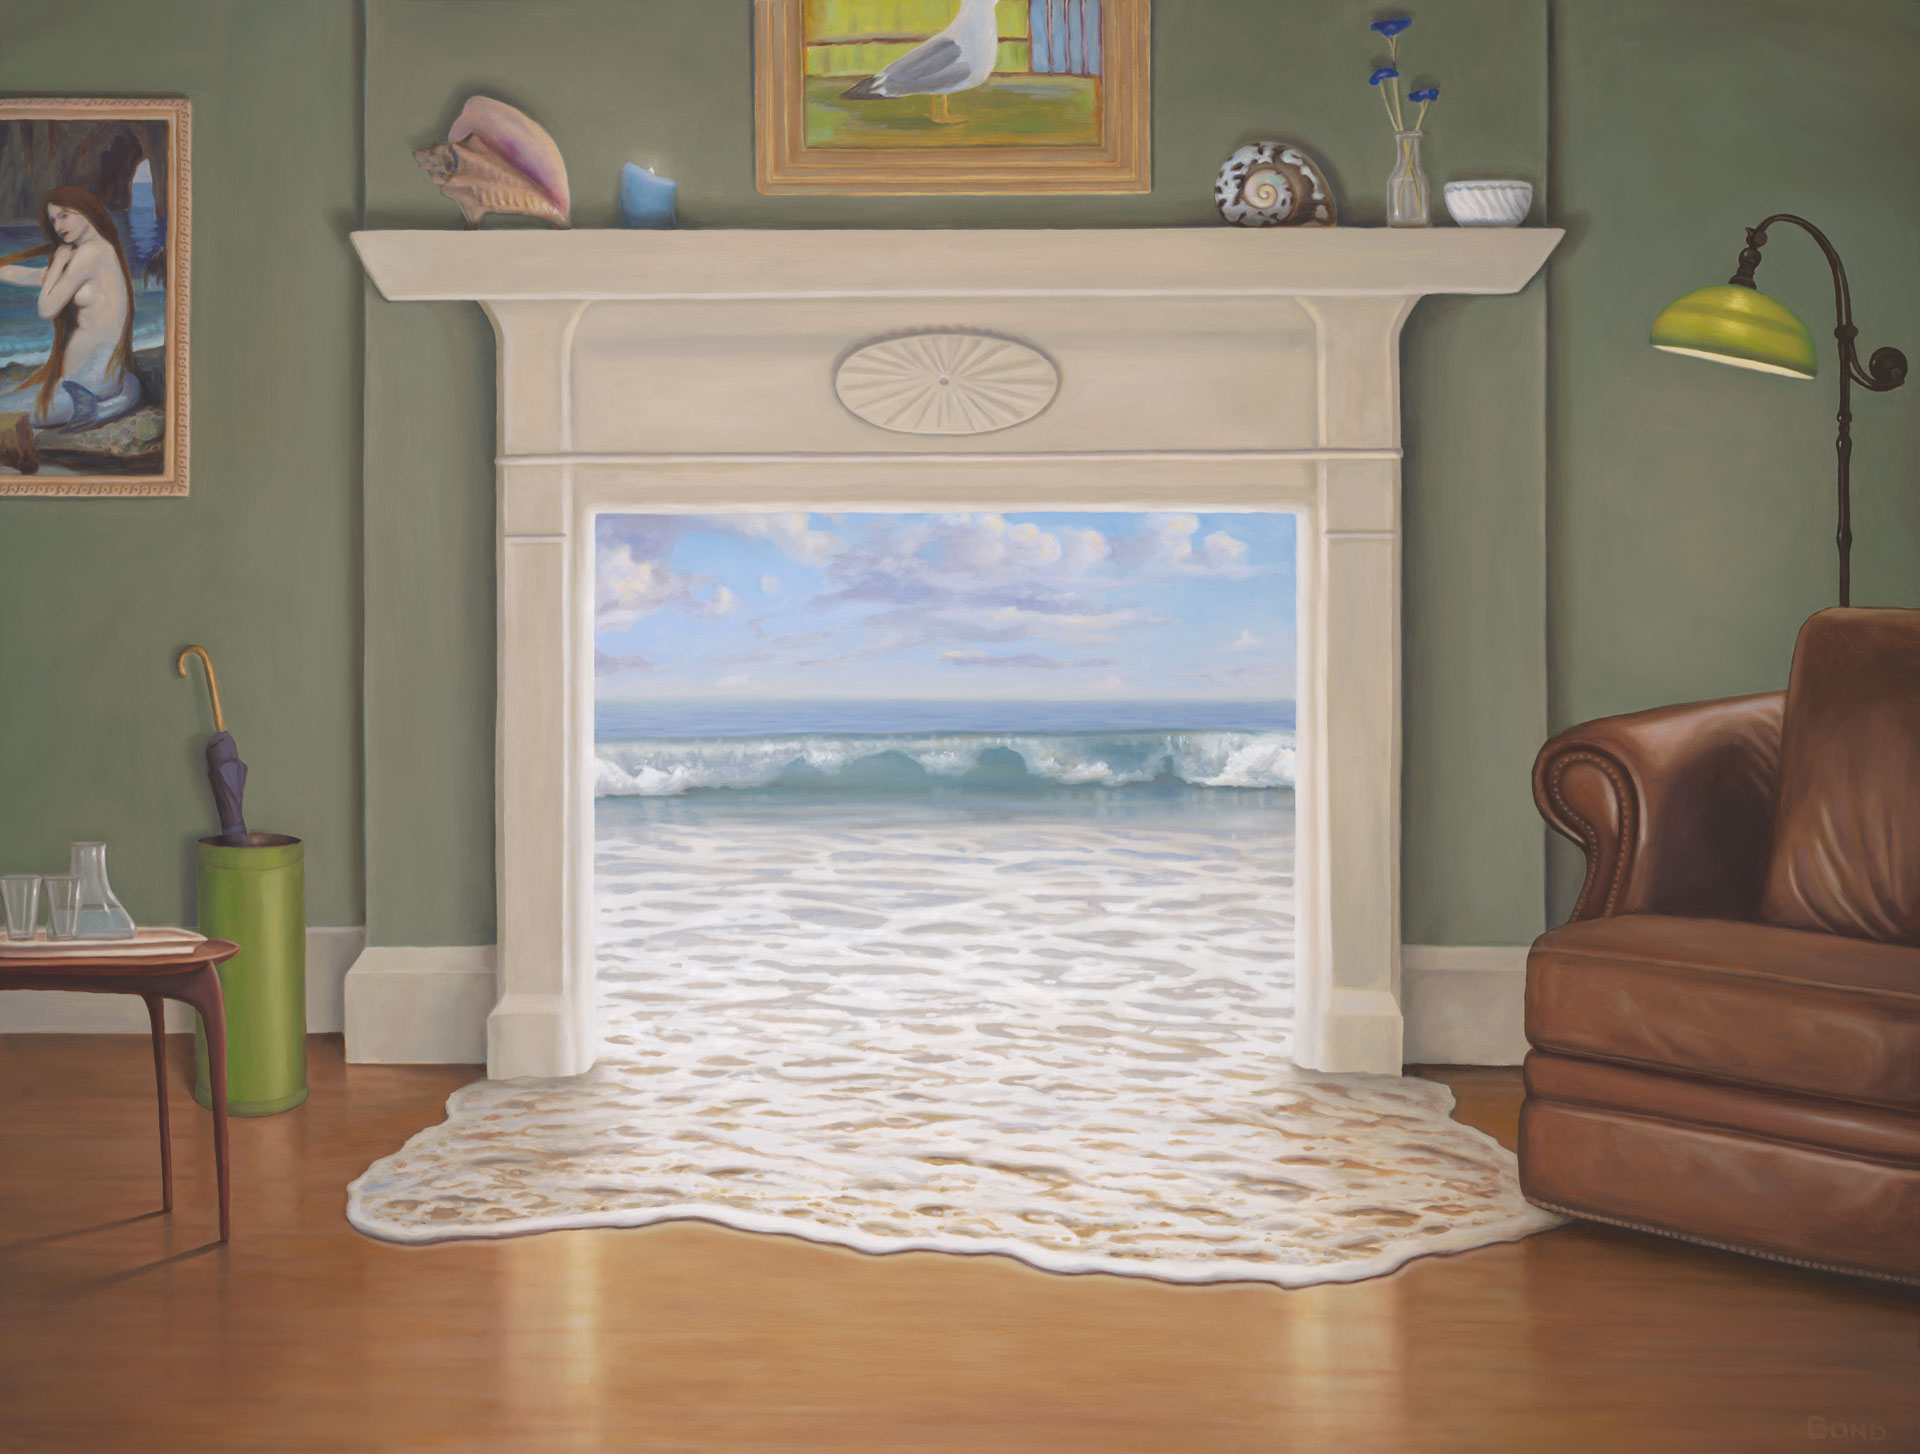 The Waterhouse, painting of the ocean coming through the fireplace into the living room, dreaming, ocean, art with waves surfing, sea, illusion, John William Waterhouse, mermaid, seagull, leather chair, living room, atr about beach living, manifest, shell, umbrella, foam, wood floor, lamp, trompe l'oeil, soulful uplifting inspirational art, soul stirring illusion art, romantic art,  surrealism, surreal art, dreamlike imagery, fanciful art, fantasy art, dreamscape visual, metaphysical art, spiritual painting, metaphysical painting, spiritual art, whimsical art, whimsy art, dream art, fantastic realism art, magic realism oil painting by Paul Bond